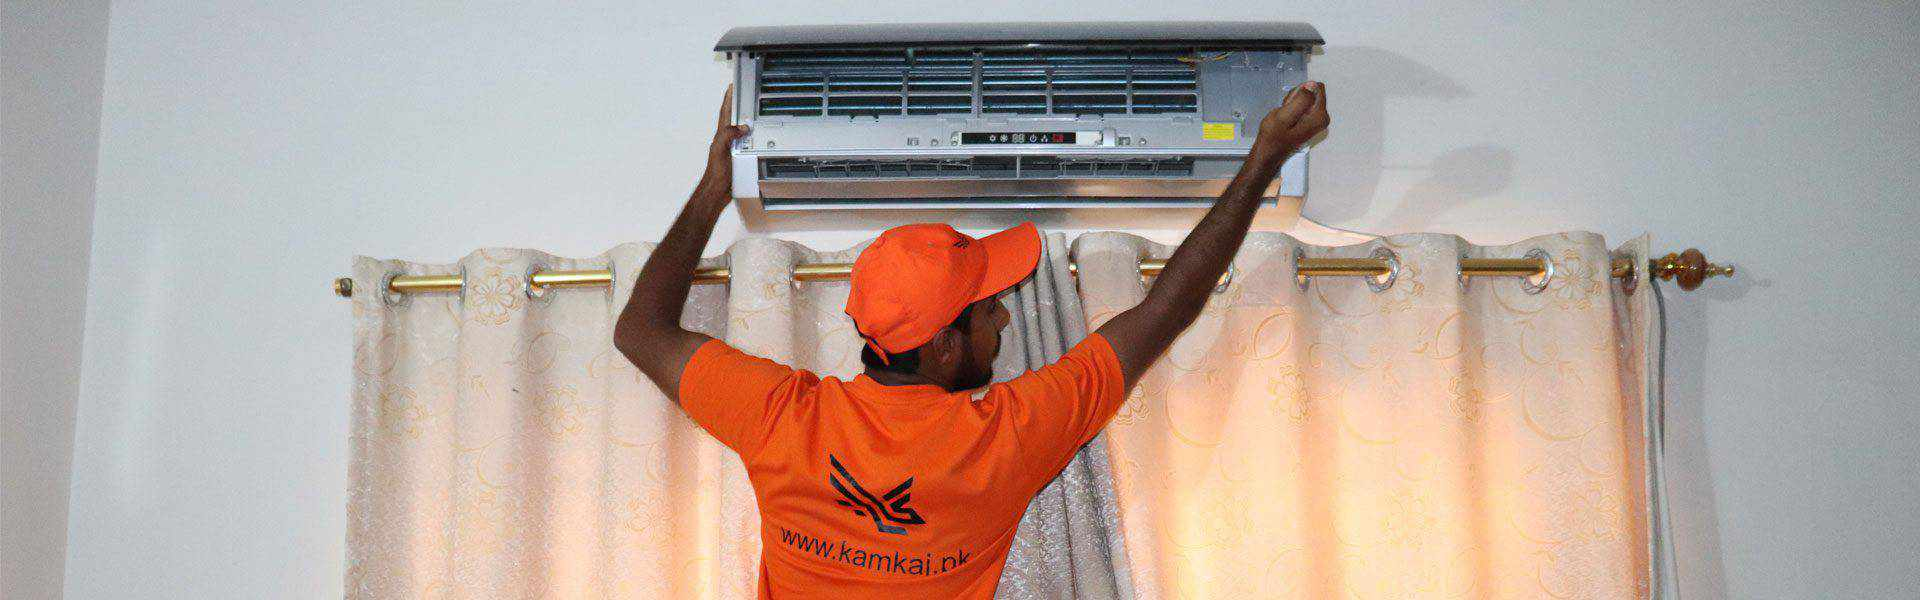 Ac Installation | Gas Refilling | AC Repair | Hire now - Kam